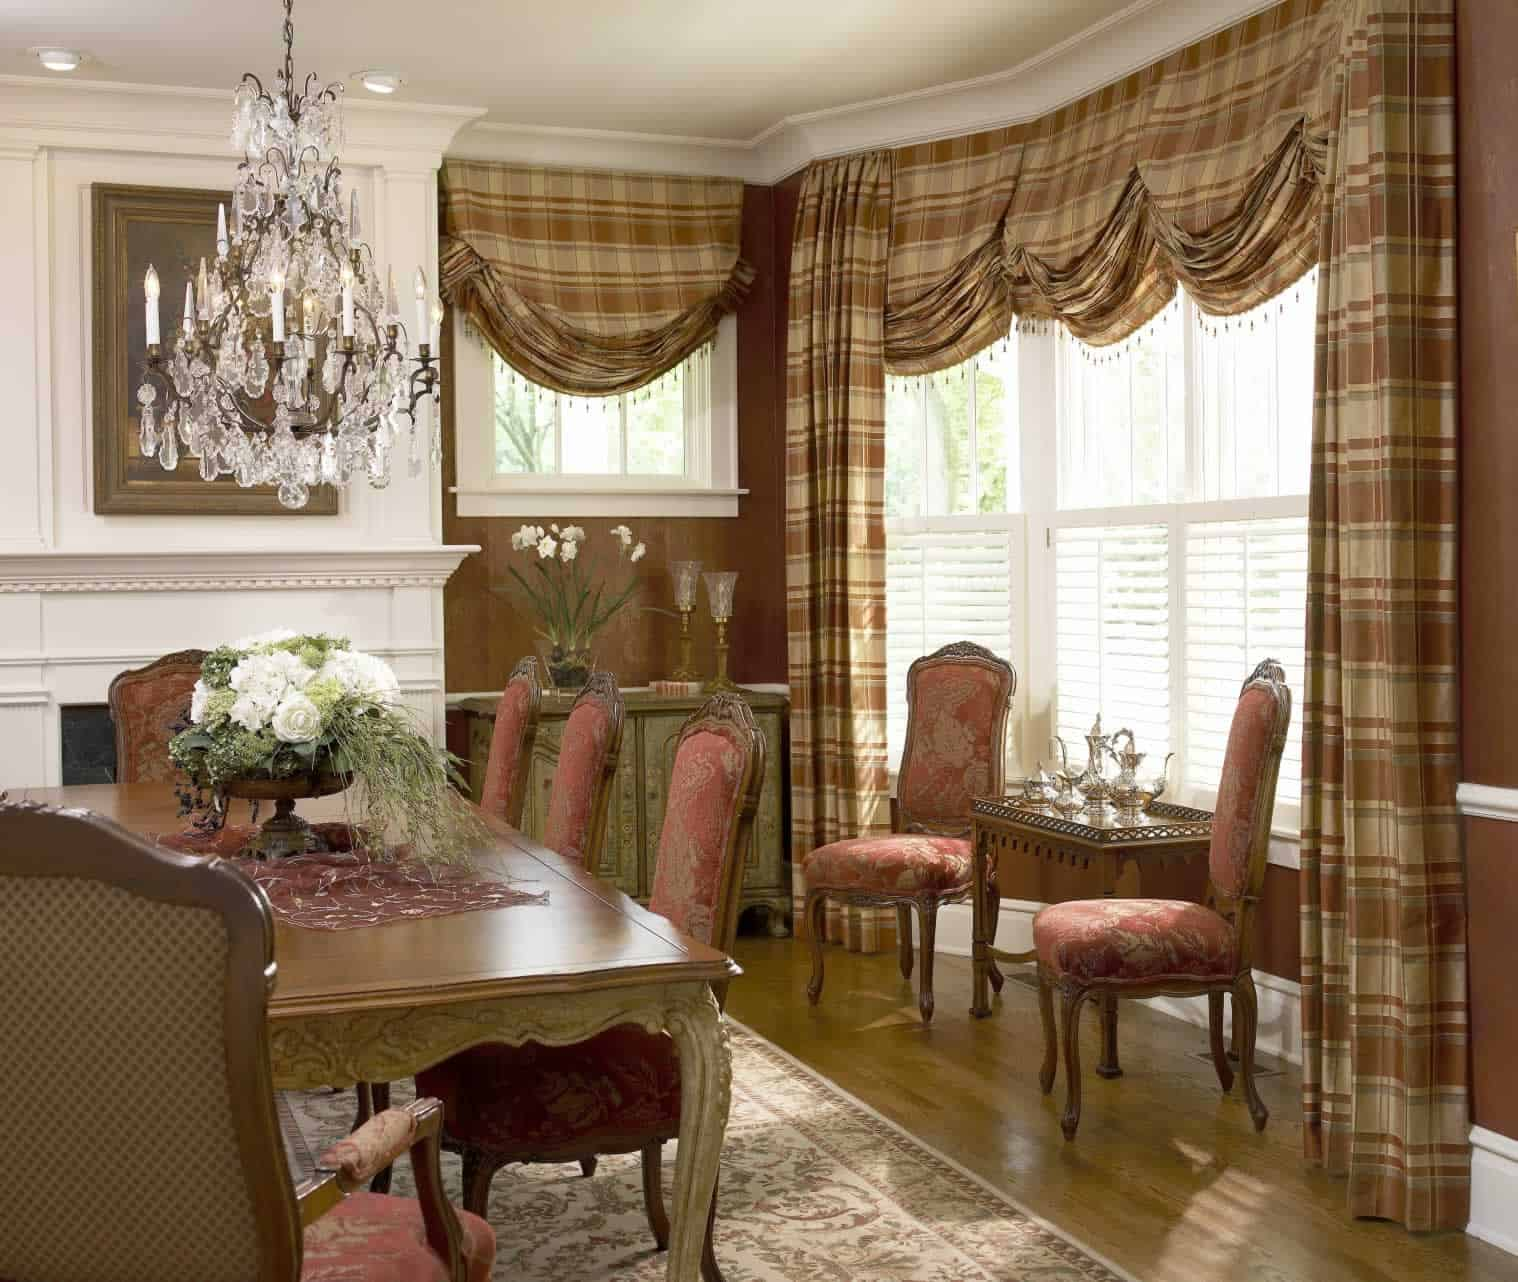 Finish dressing your windows ruffell brown window fashions for Dining room windows